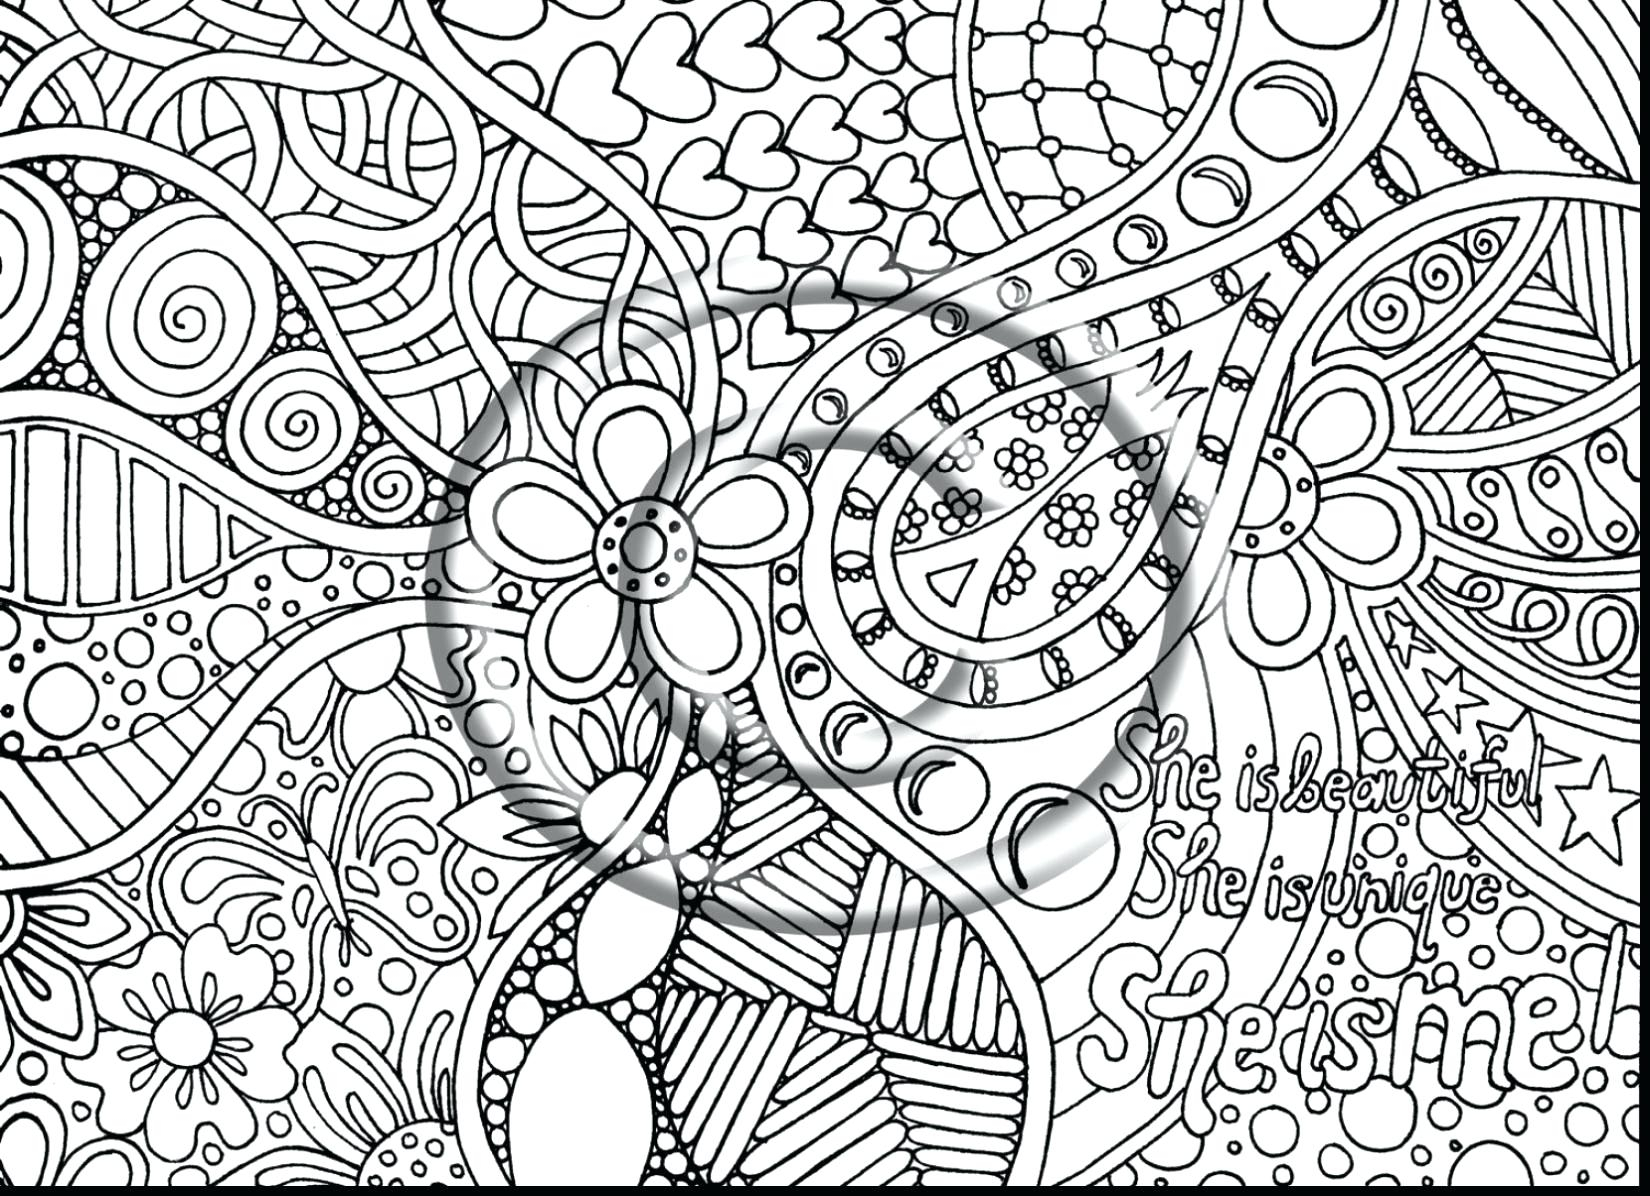 Mushroom Coloring Pages  Gallery 18b - Save it to your computer